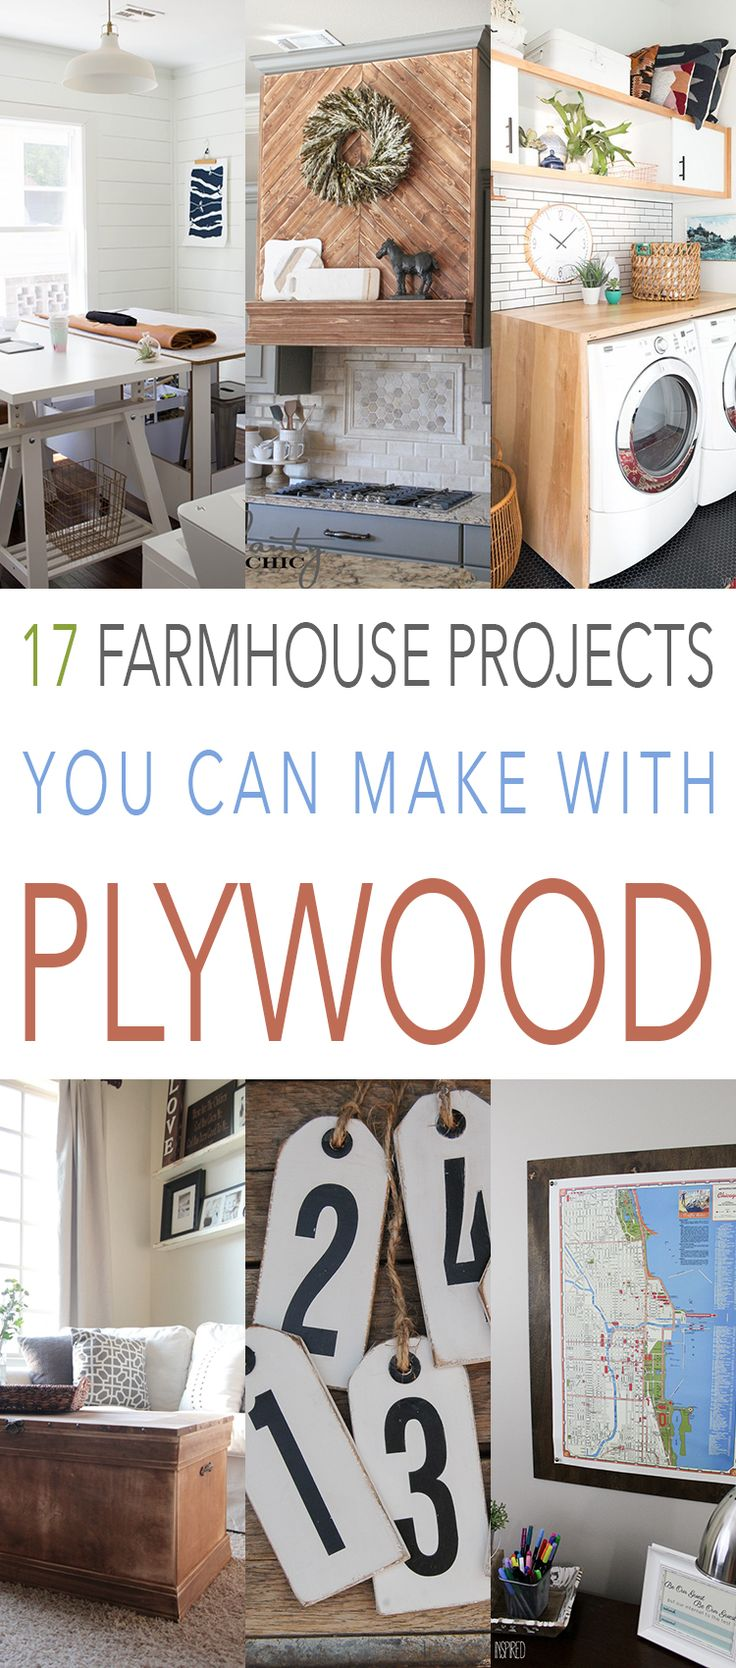 When you think about Plywood you usually don't picture fabulous diy projects in your  mind do you?  Well think again my friends…this super inexpensive piece of wood can truly work wonders.  So today we have put together a collection of 16 Farmhouse Projects You Can Builds With Plywood and I have a feeling you are …